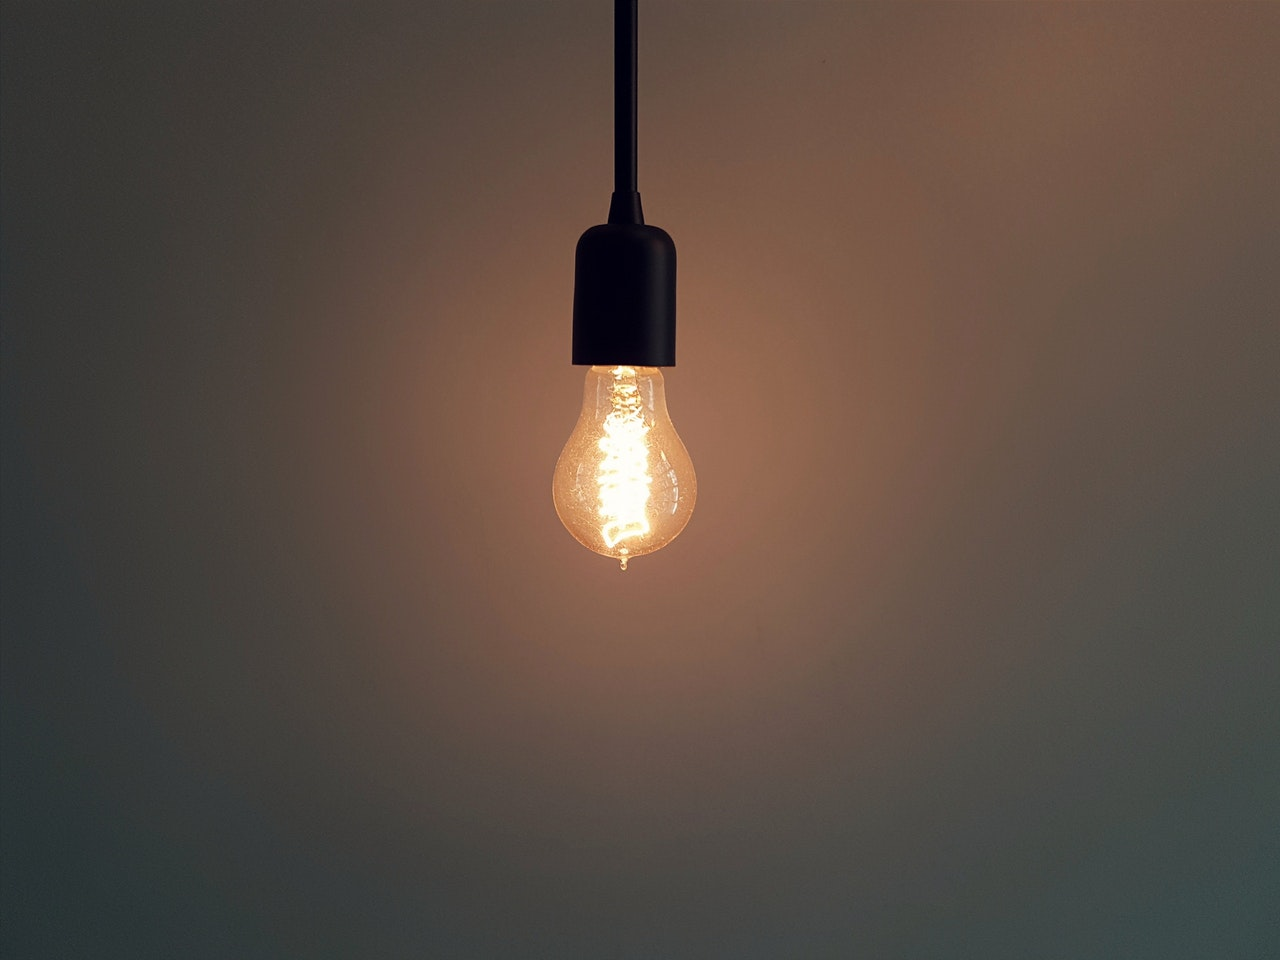 A lit lightbulb hanging on a pendant against a blank wall.